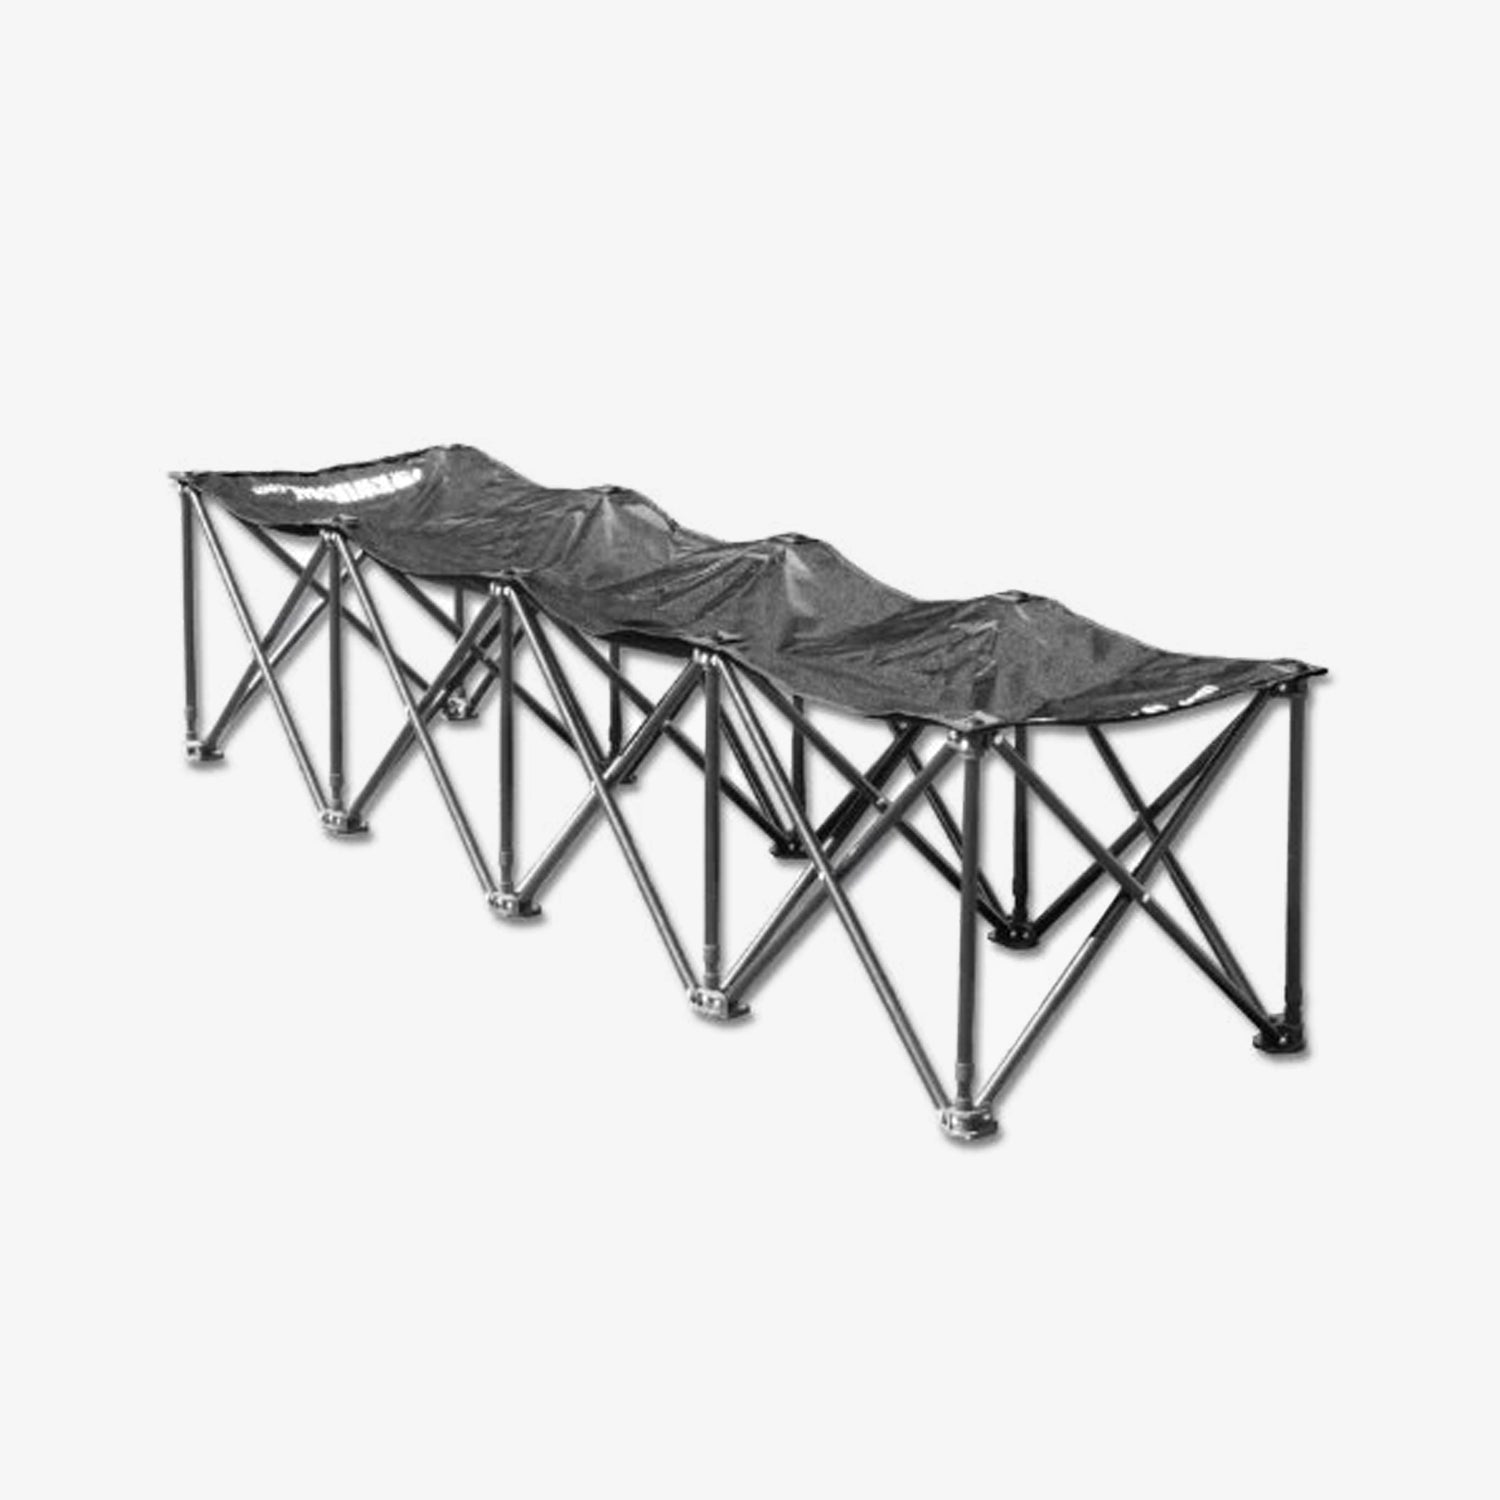 4 Seat Kwik Bench - Black